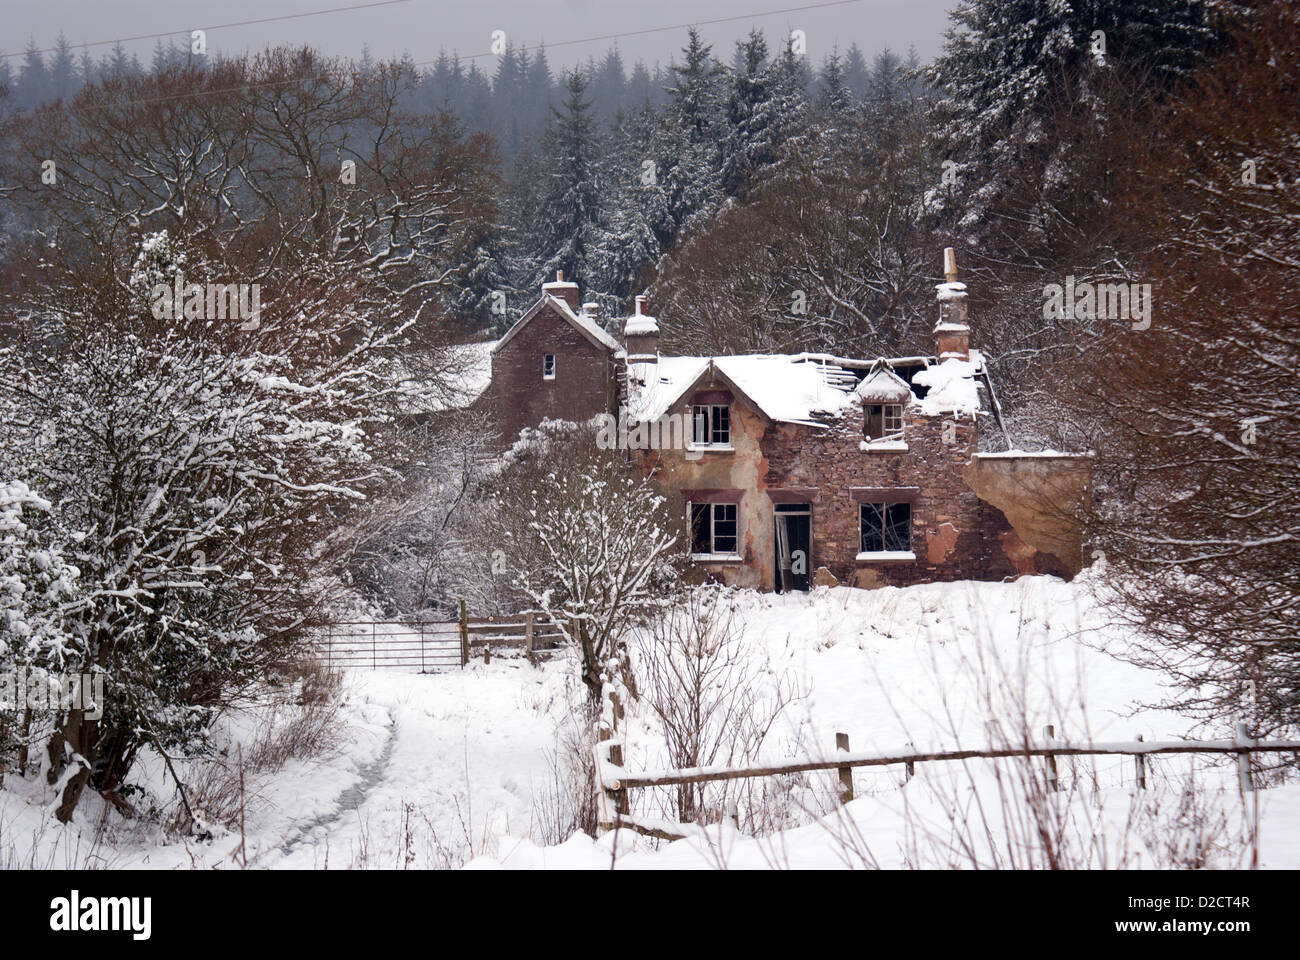 A ruined cottage in the grip of a snowy winter at Blaize Bailey in the Forest of Dean, Gloucestershire, UK - Stock Image